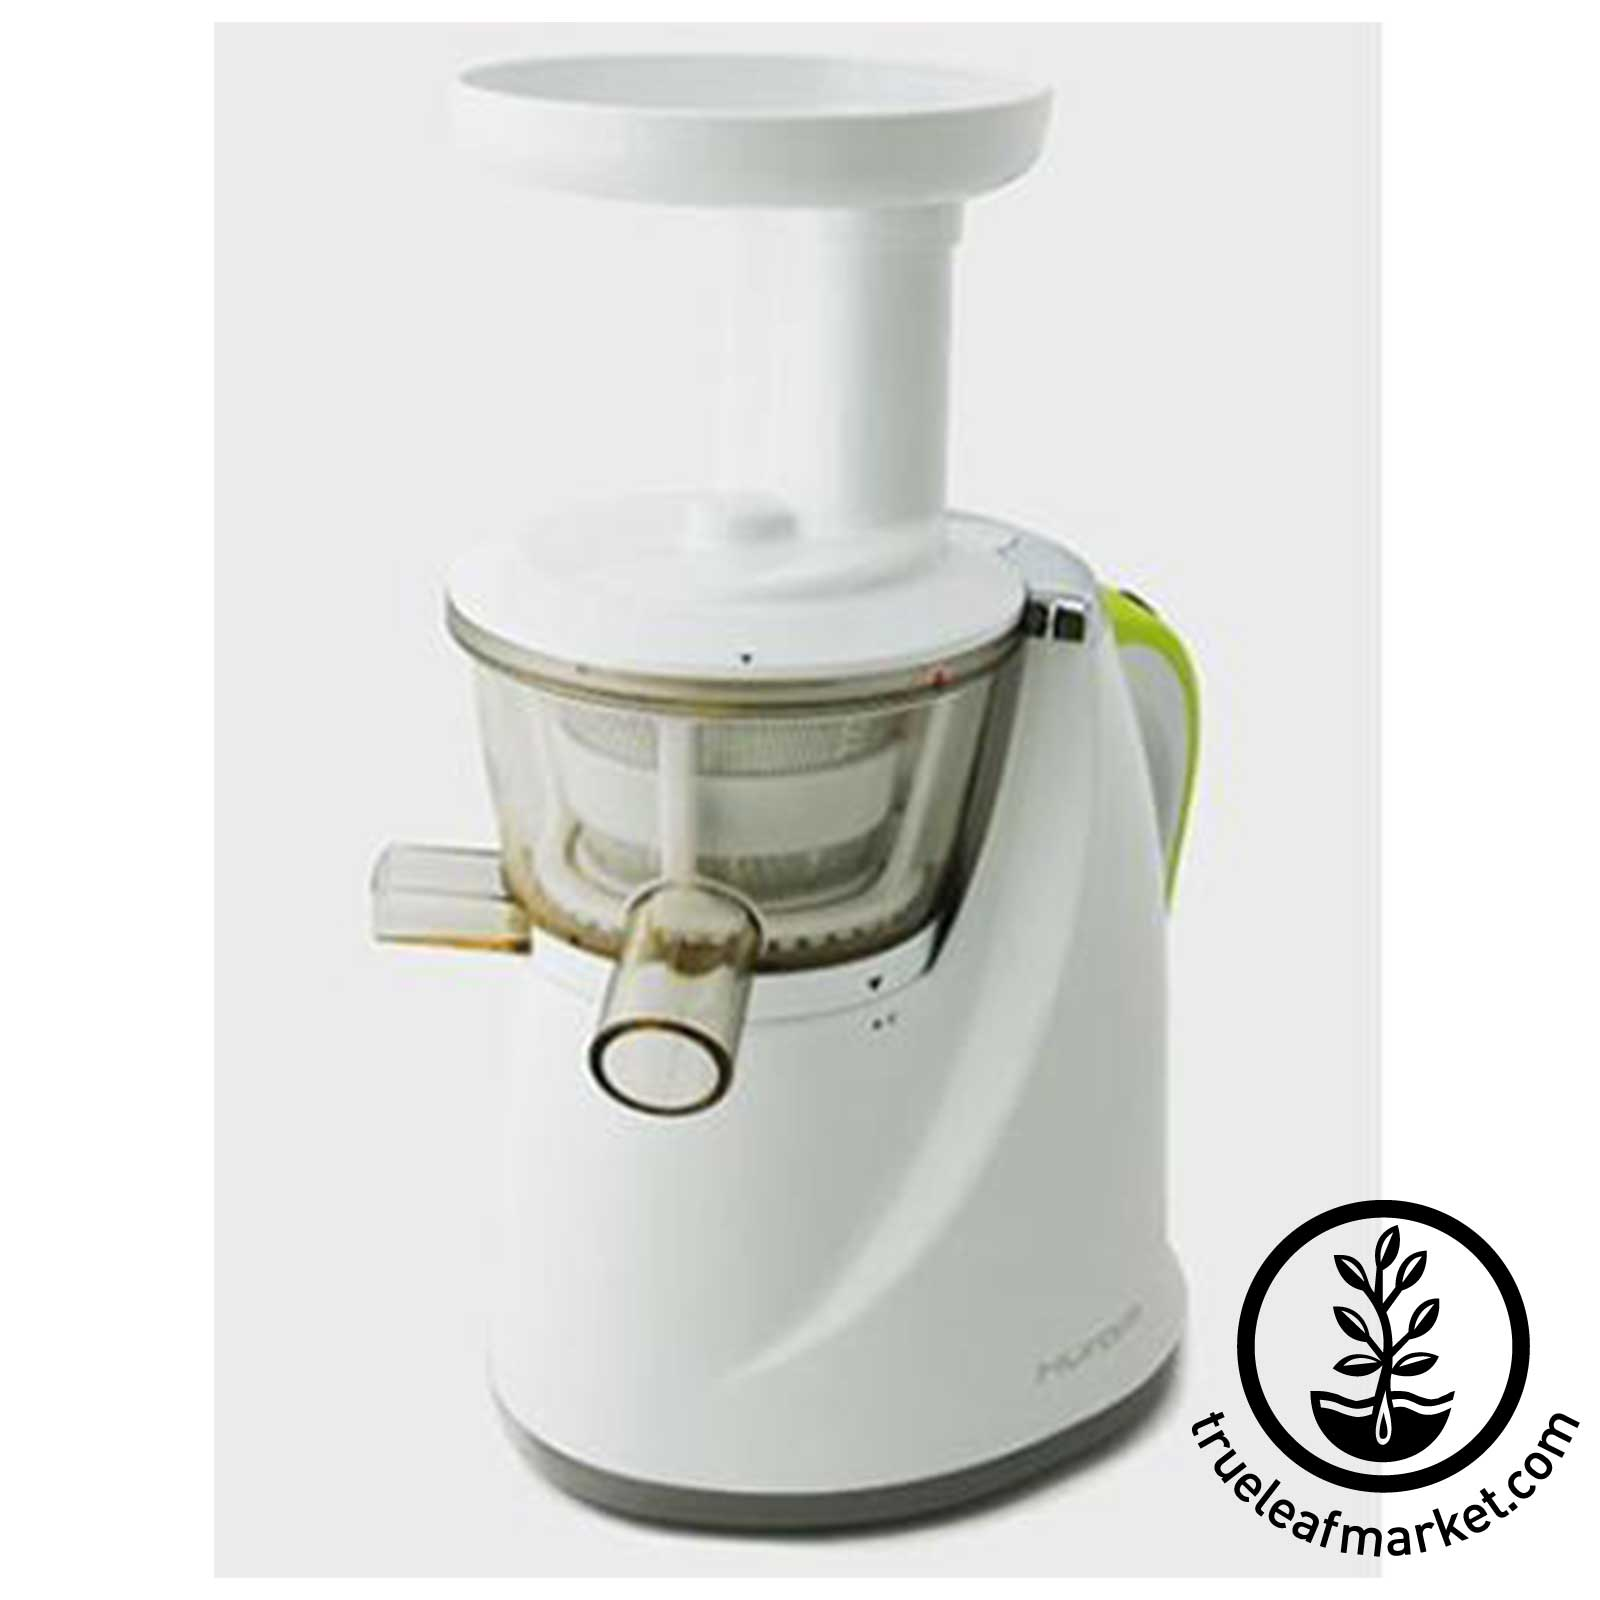 Hurom Vertical Masticating Slow Juicer : Tribest Masticating vertical Slow Juicer Model SW-2000